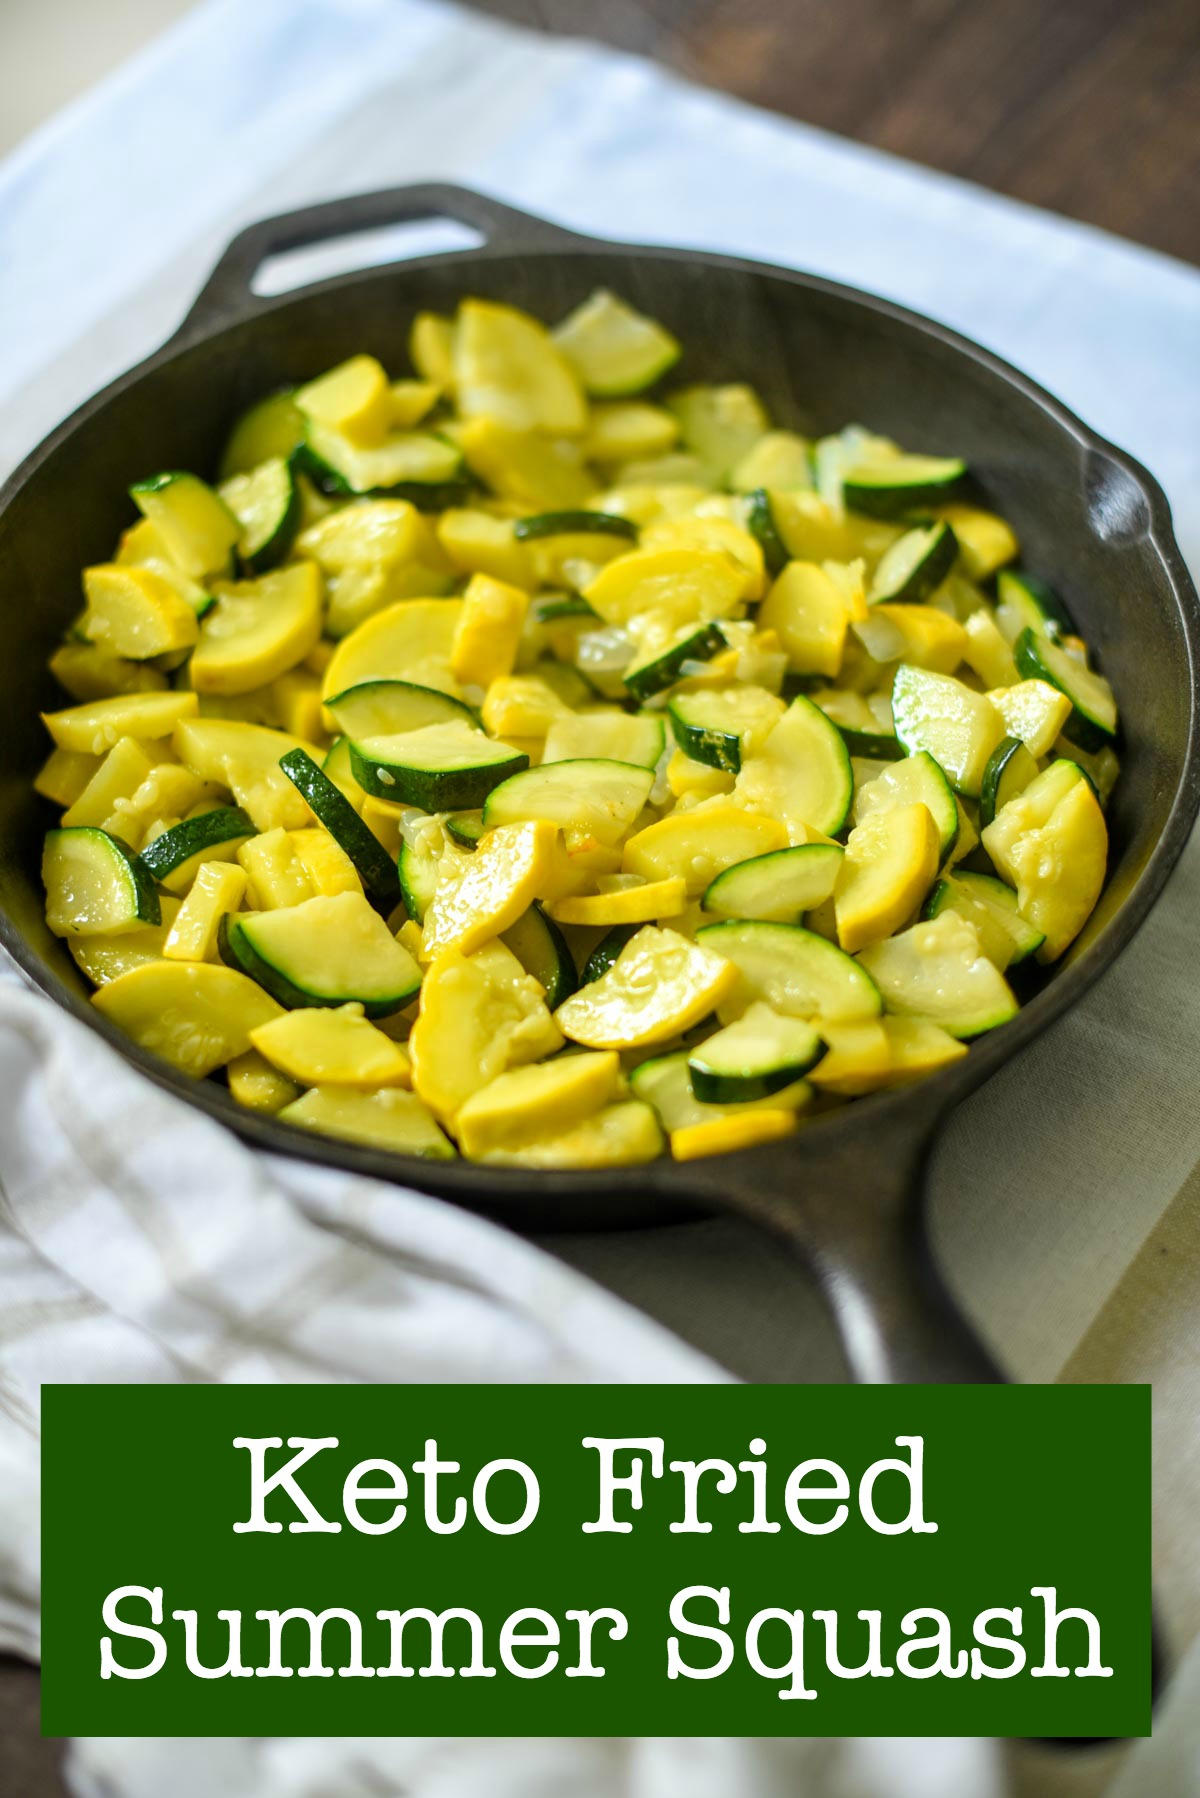 Fried summer squash in an iron skillet on plan with Trim Healthy Mama and keto.